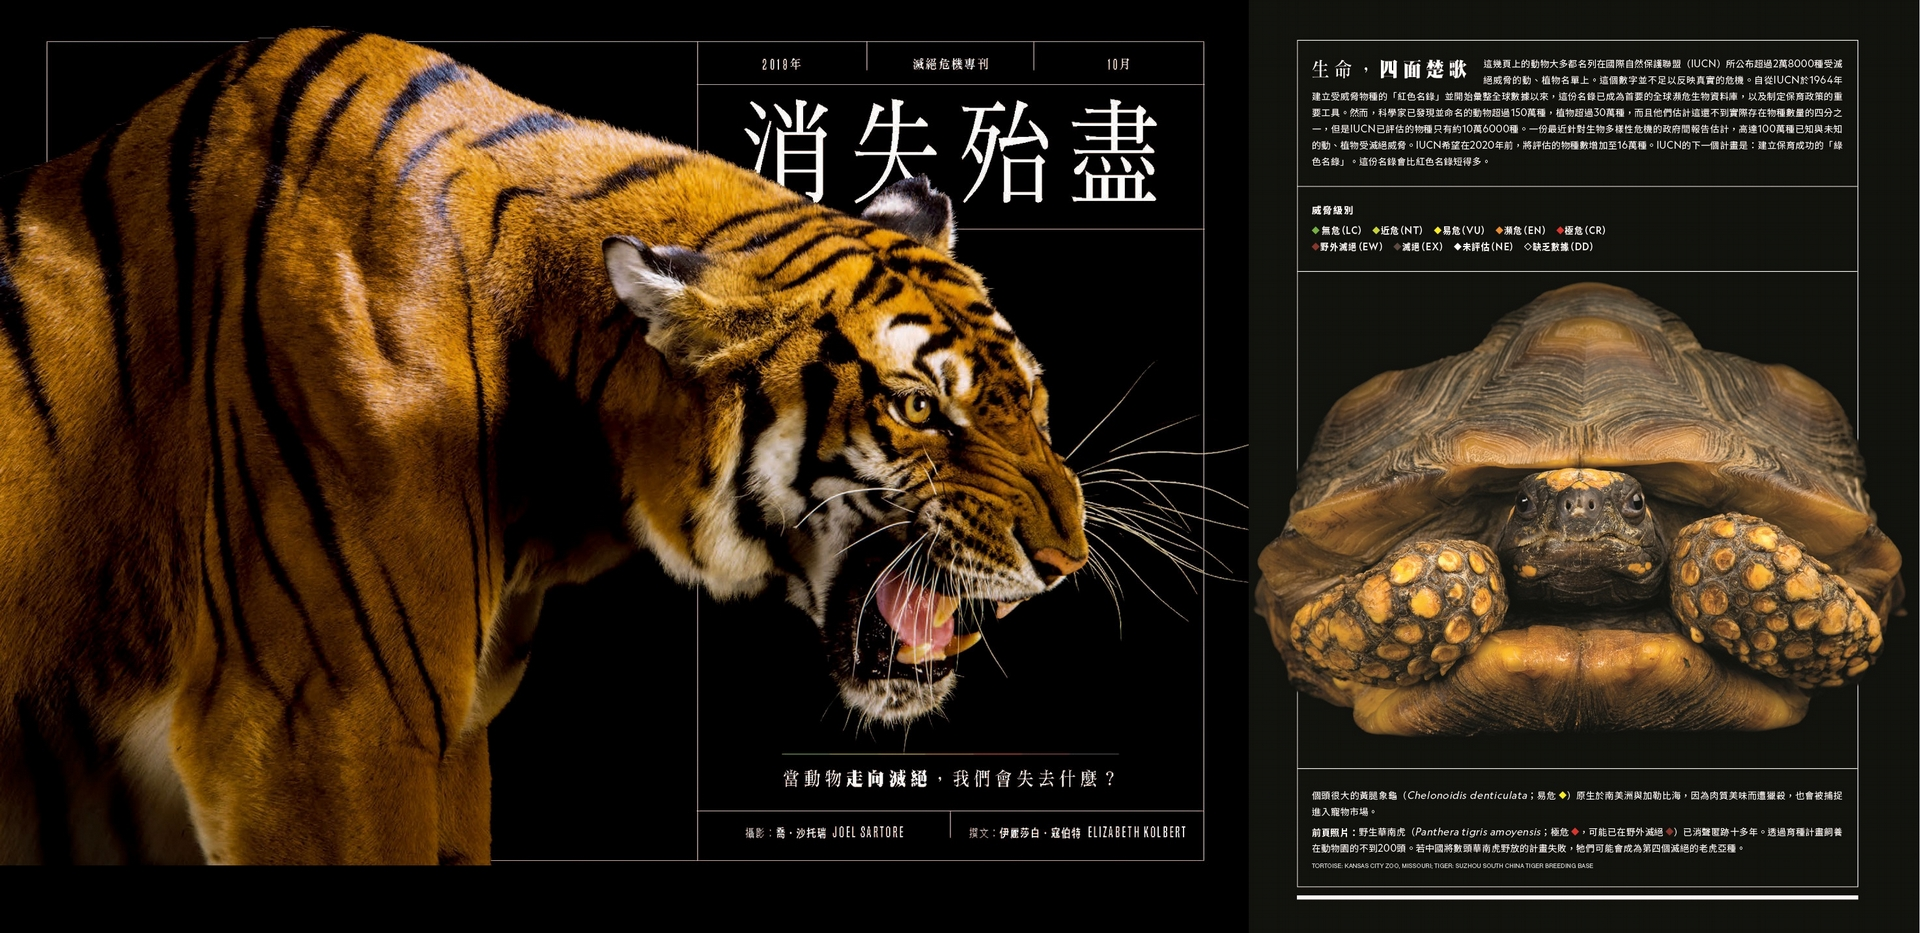 攝影:喬.沙托瑞 JOEL SARTORE;TORTOISE: KANSAS CITY ZOO, MISSOURI; TIGER: SUZHOU SOUTH CHINA TIGER BREEDING BASE